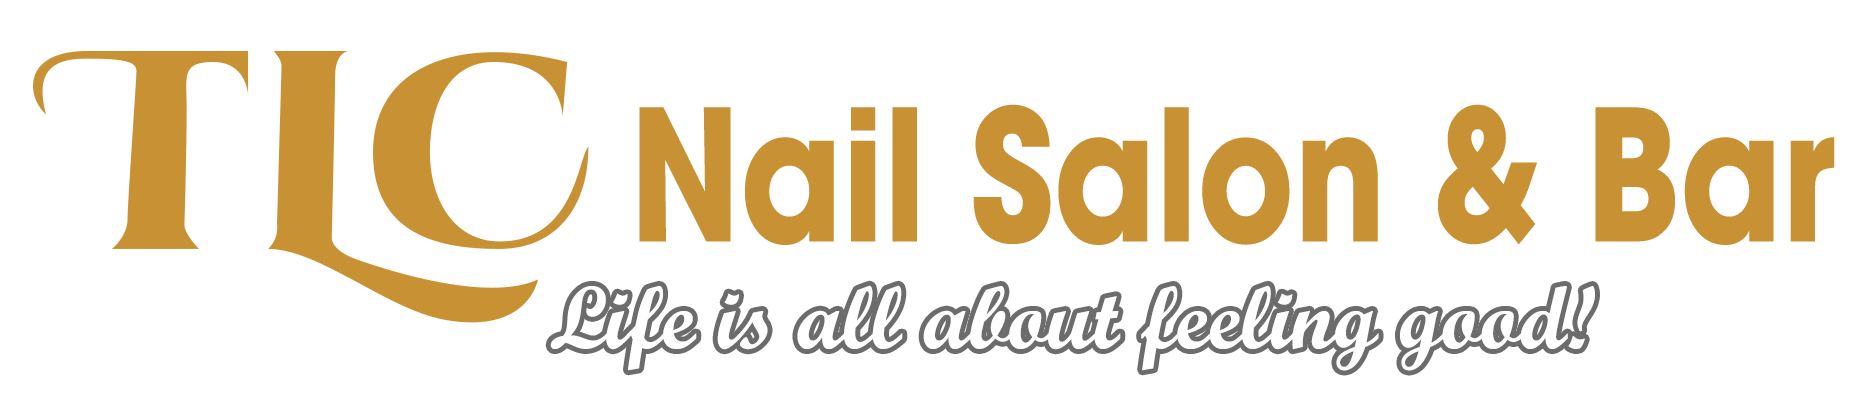 TLC Nail Salon & Bar - What is Deluxe Manicure? - nail salon 89146